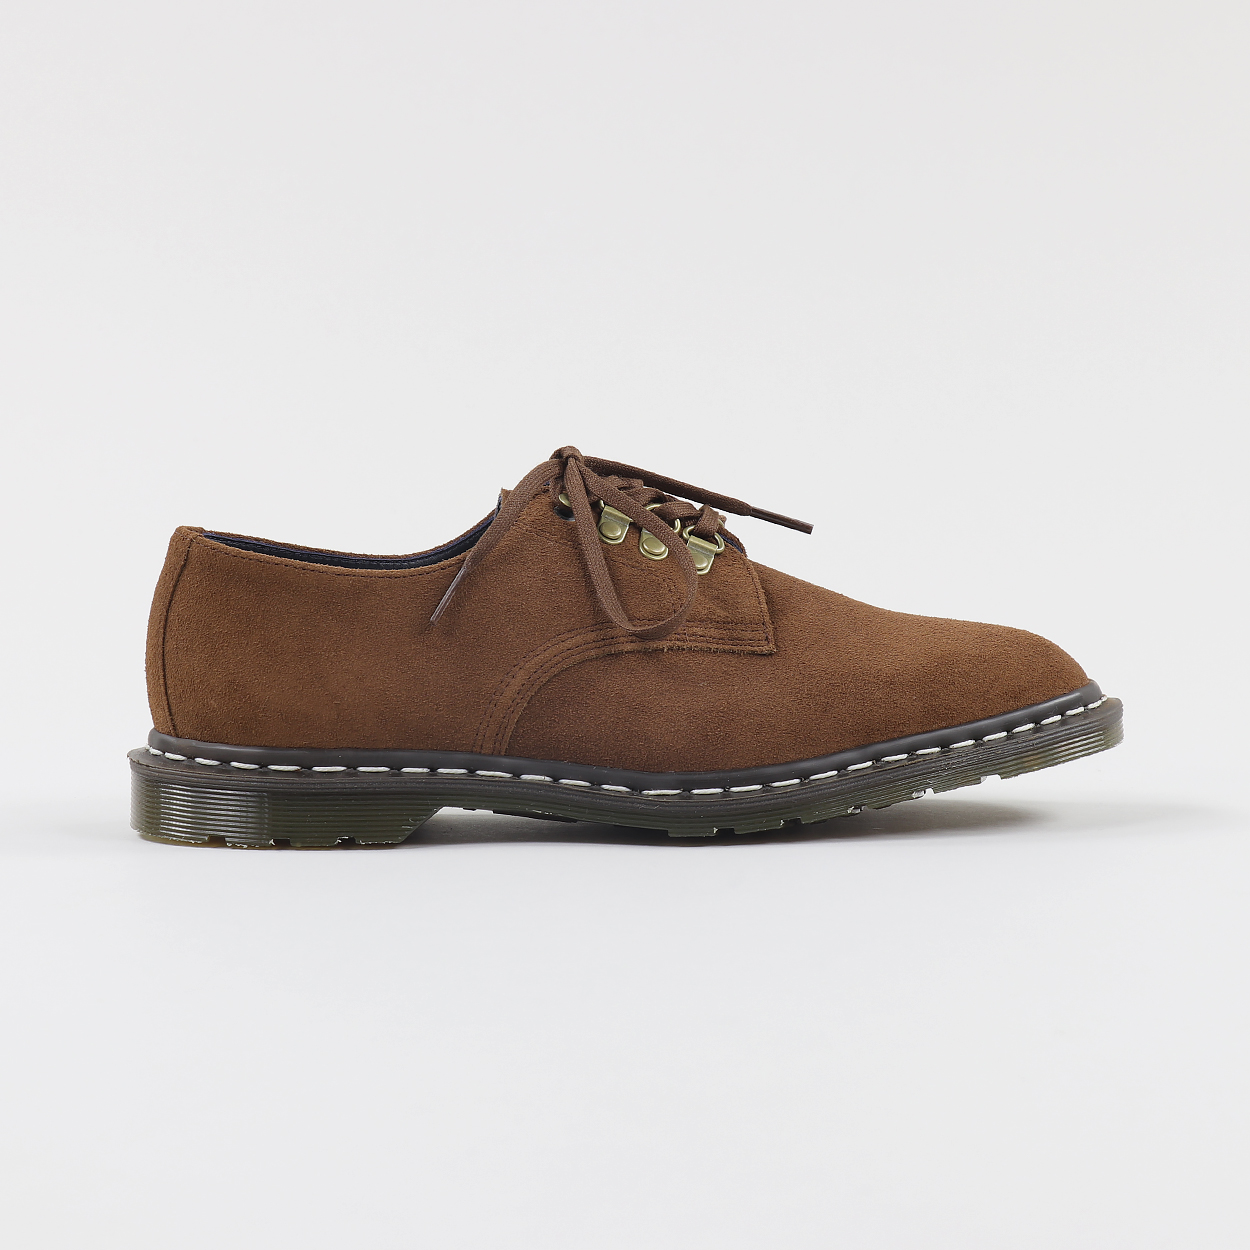 f58690b6a6b Dr Martens Mens Nanamica Collab Plymouth Suede Shoes Polo Brown £110.00